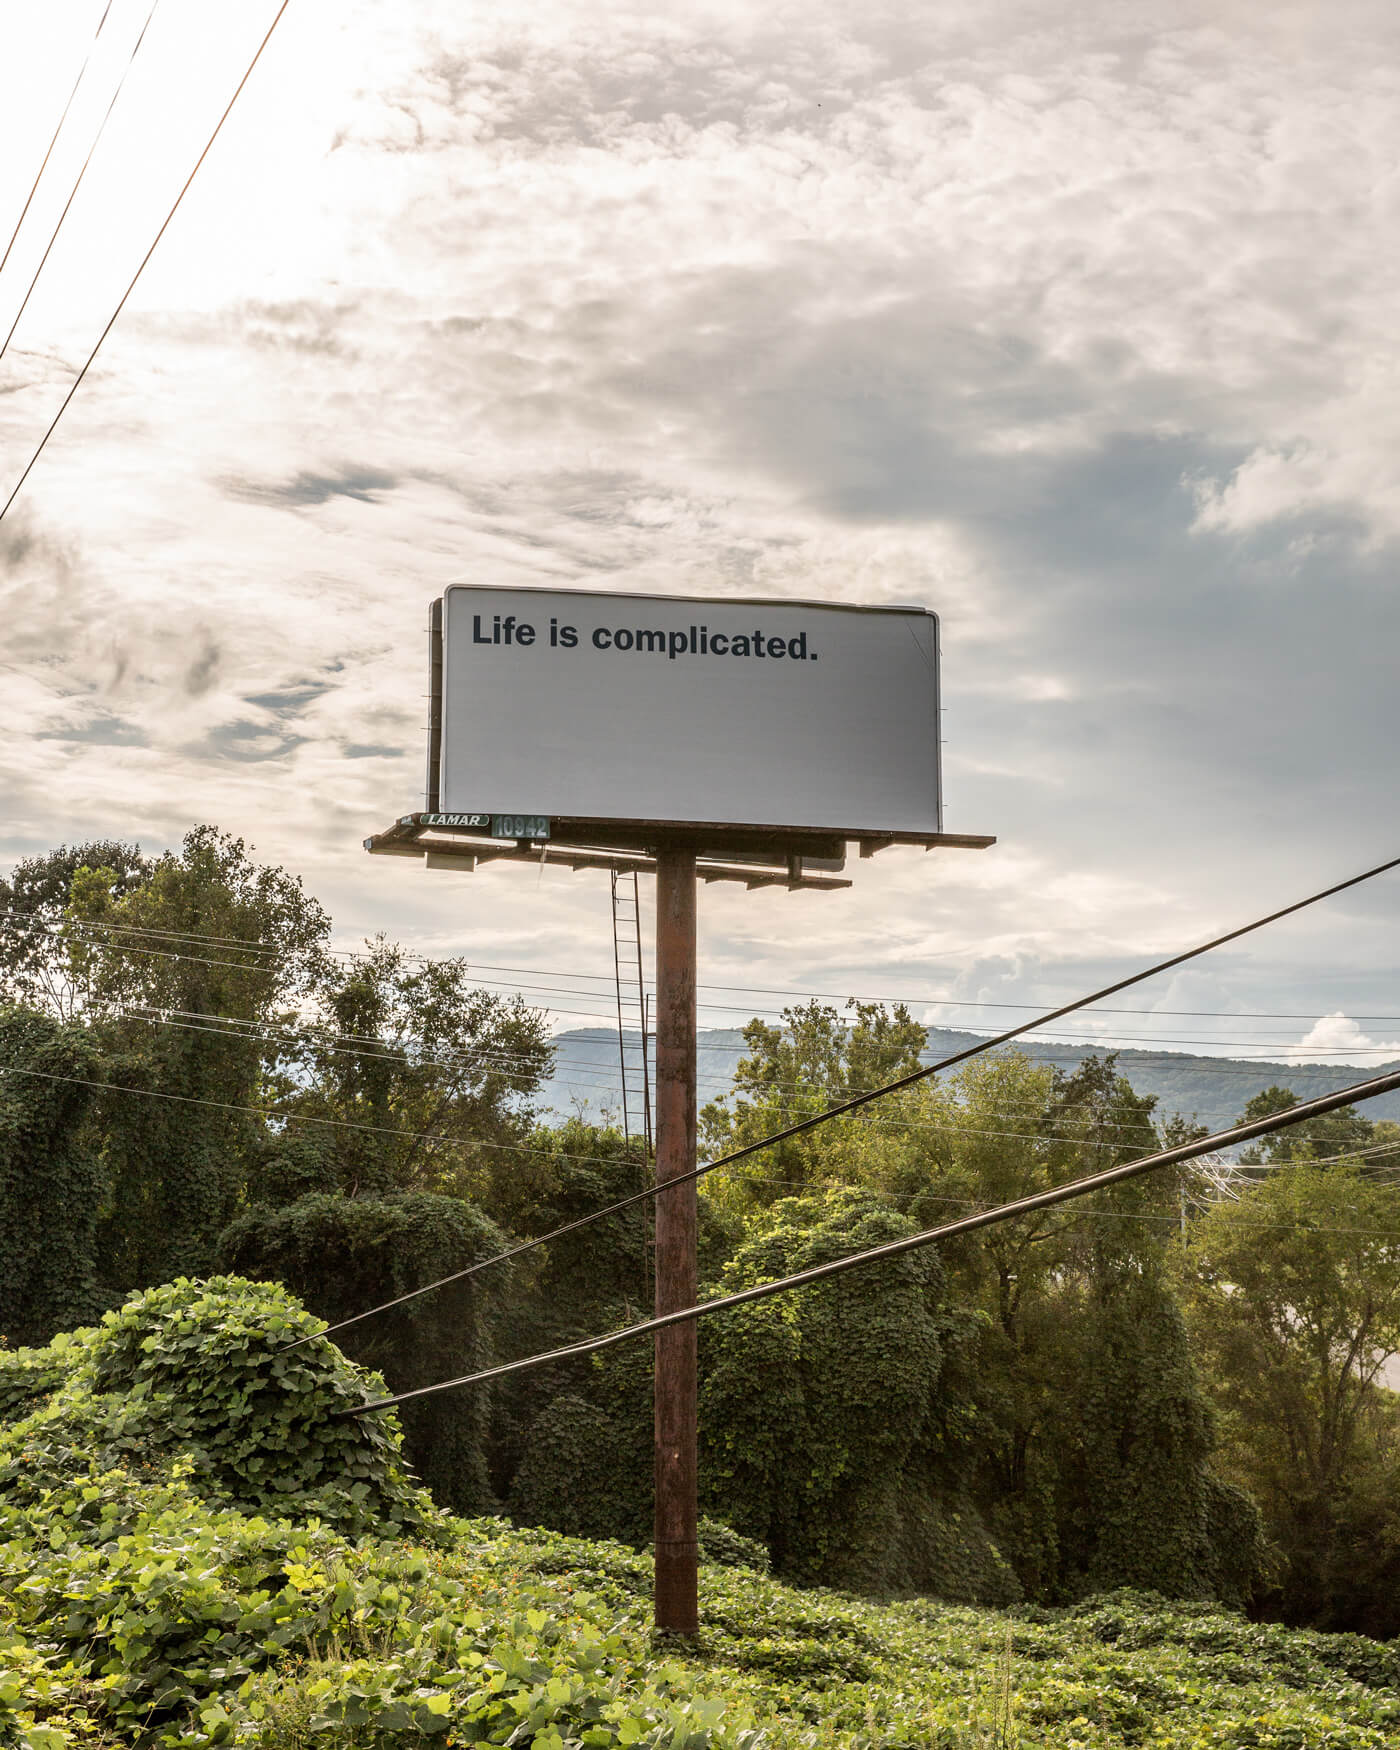 simply-bank-life-is-complicated-billboard.jpg